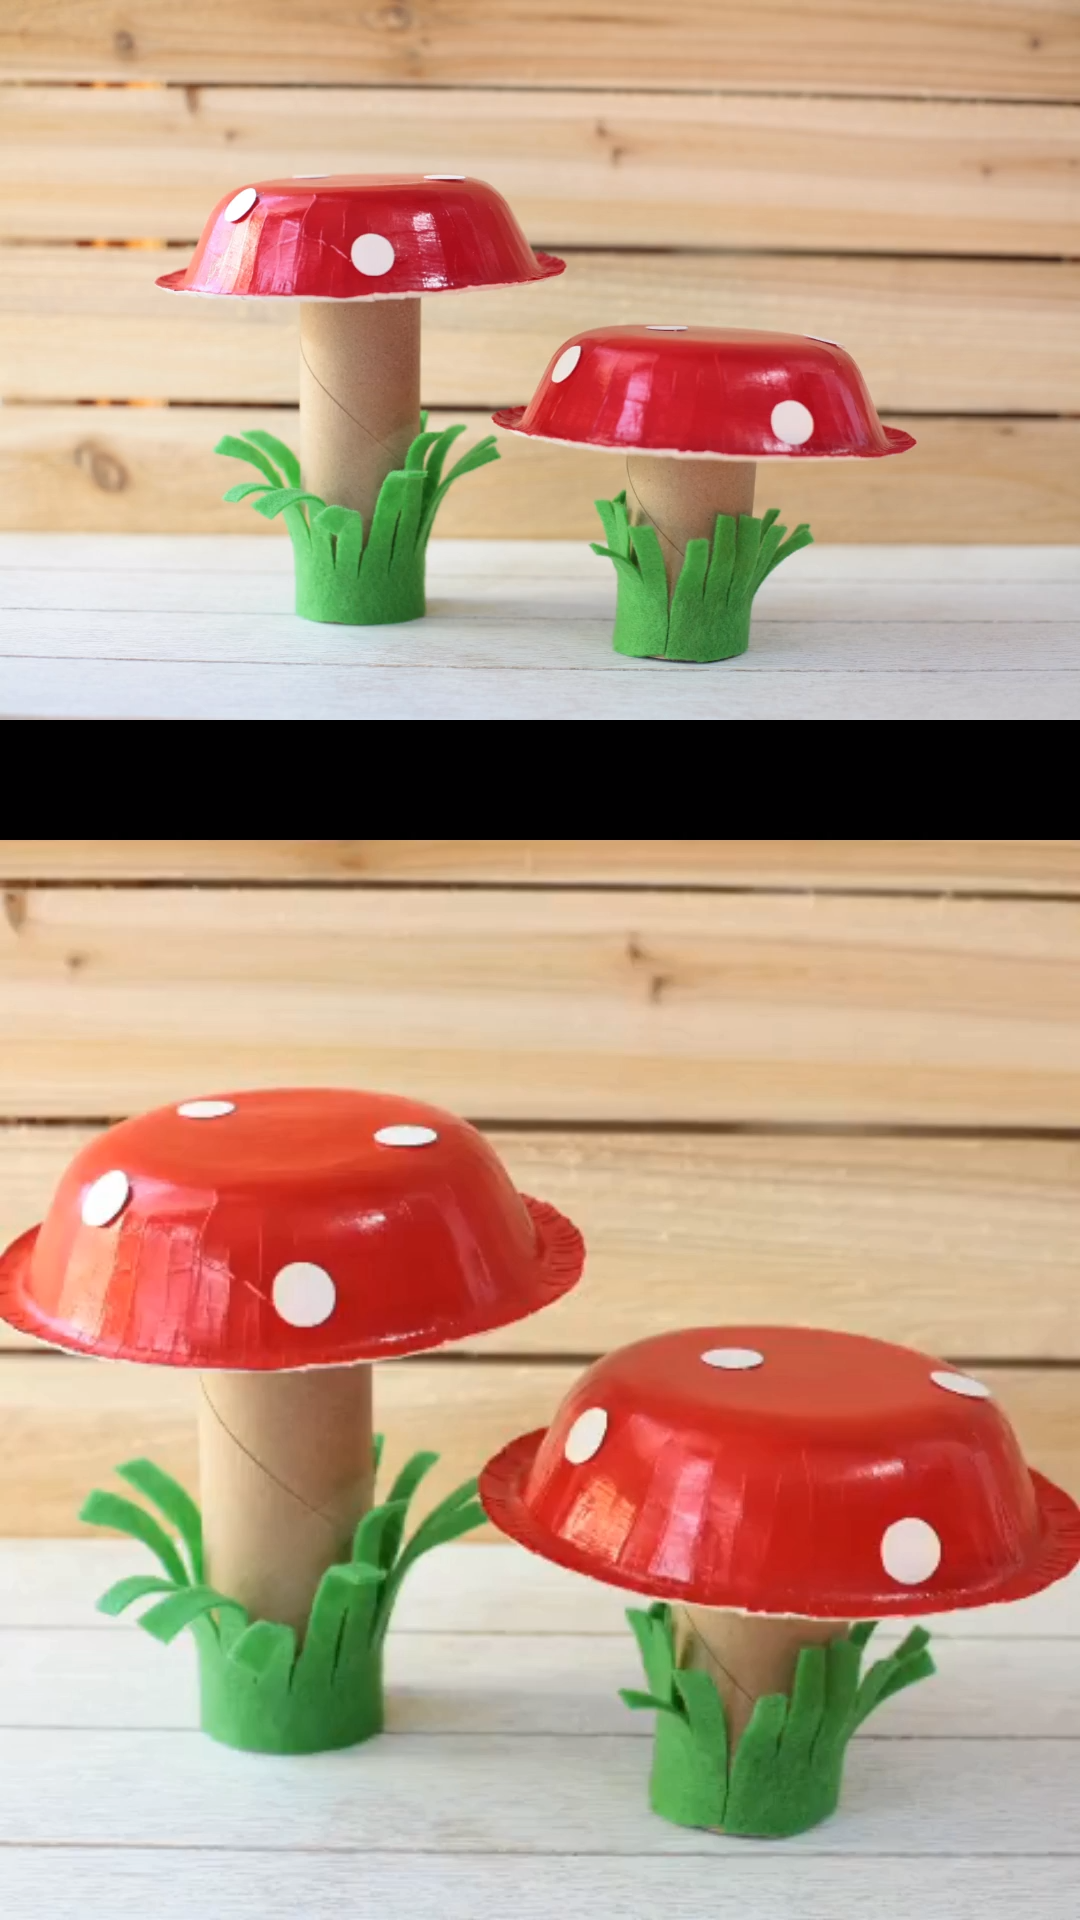 An easy mushroom craft for kids to make this spring. Use paper rolls, paper bowls and felt or construction paper. #springcraftkids #mushroomcraft #paperroll